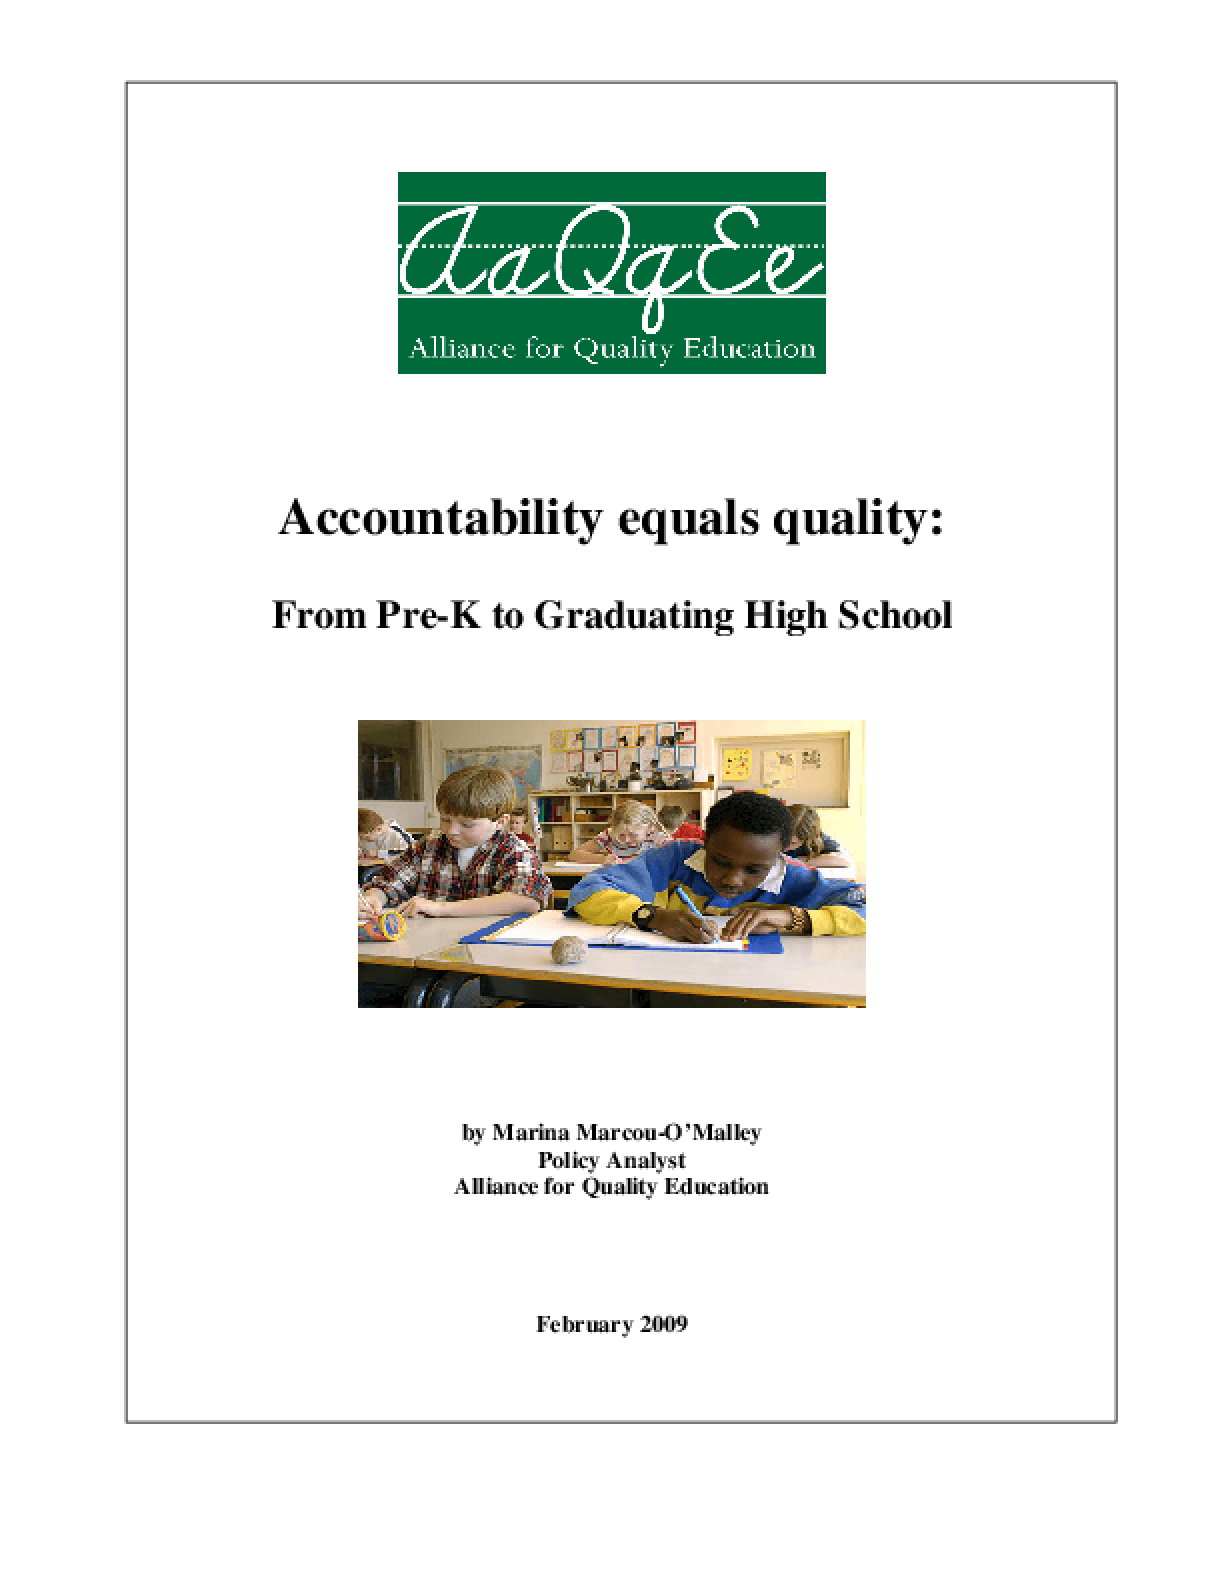 Accountability Equals Quality: From Pre-K to Graduating High School